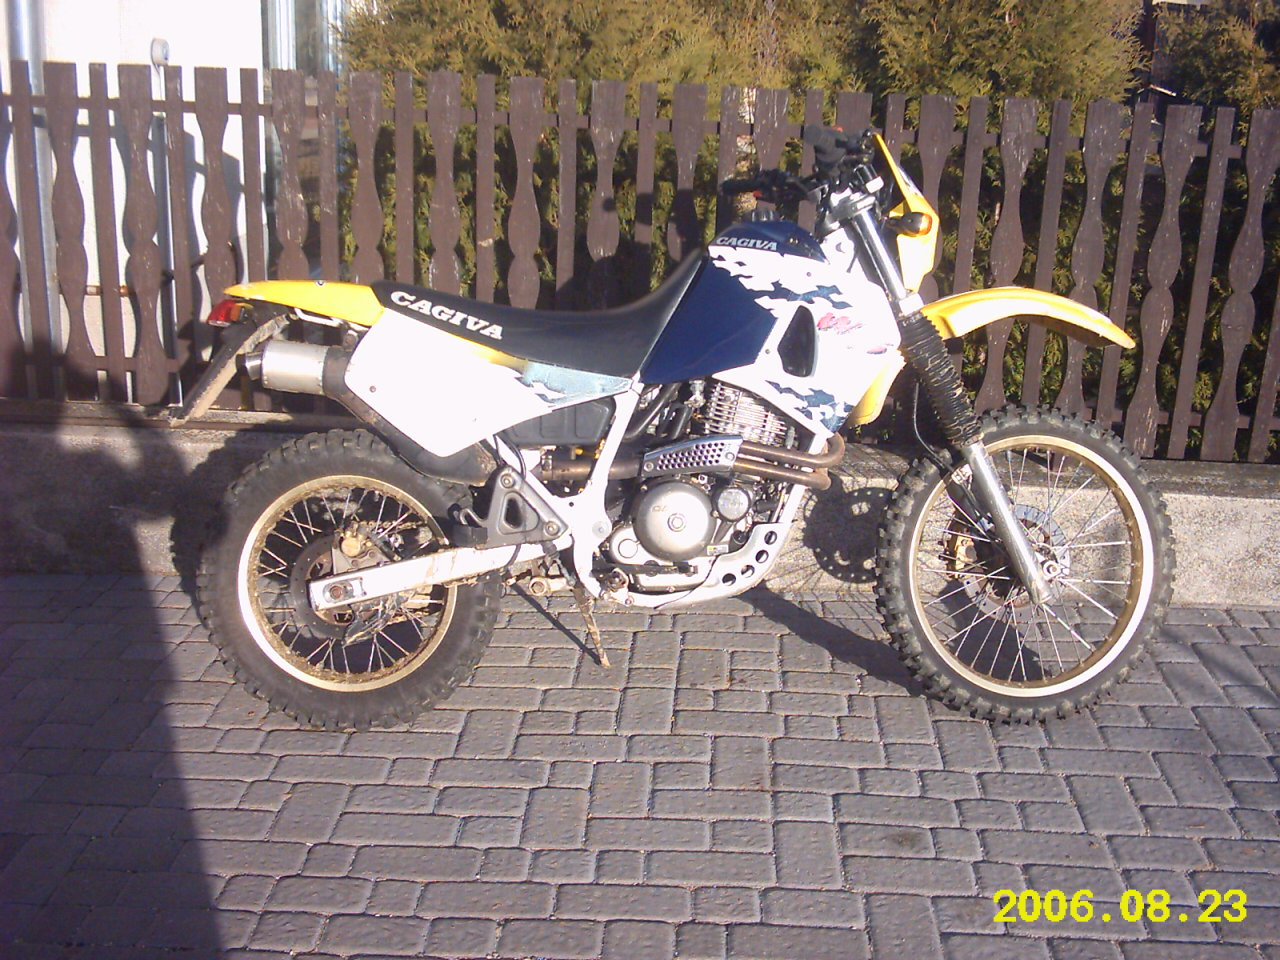 Cagiva 600 W 16 images #67249